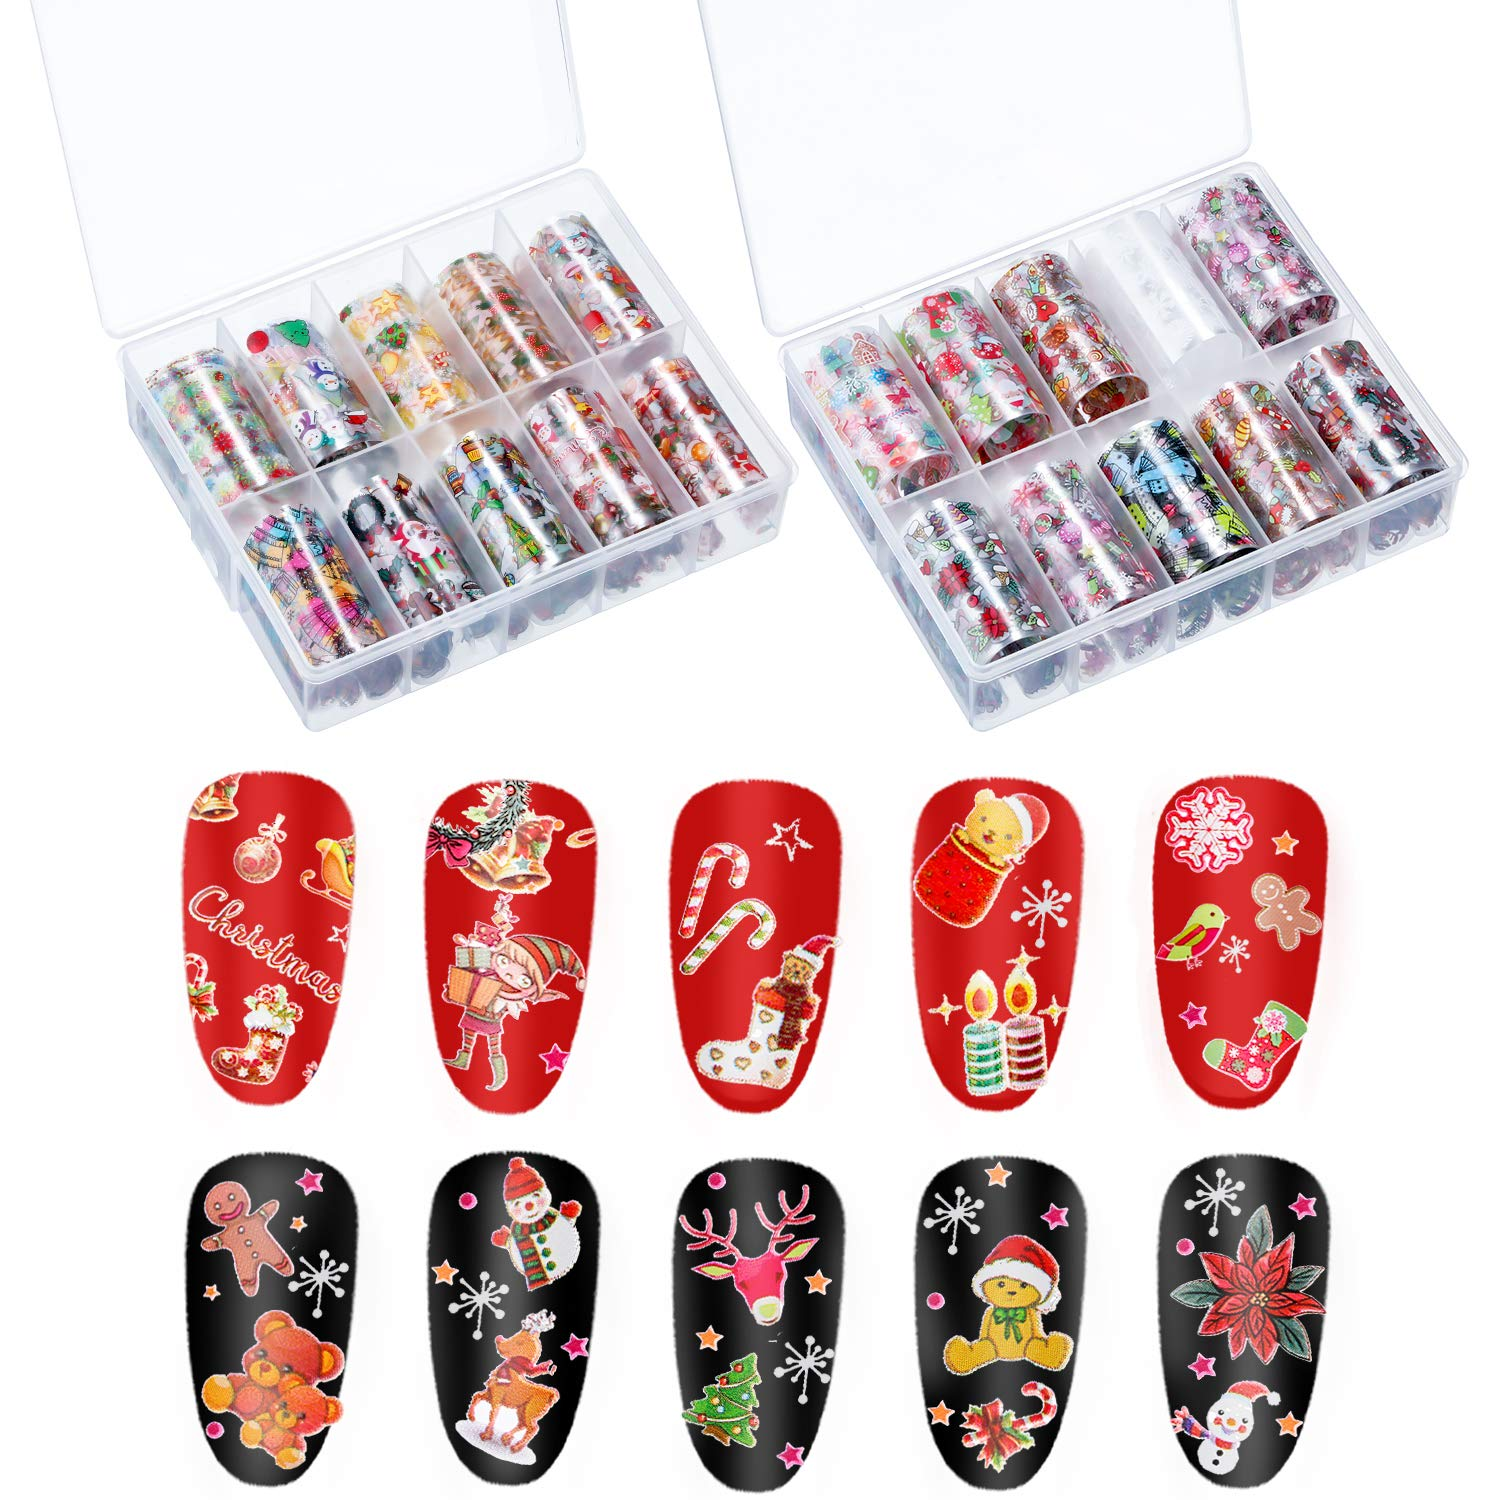 2 Boxes 20 Sheets Christmas Nail Decals Nail Art Stickers Nail Foil Transfer Wraps for Women Nail Art Decorations (Style Set 1) by Blulu